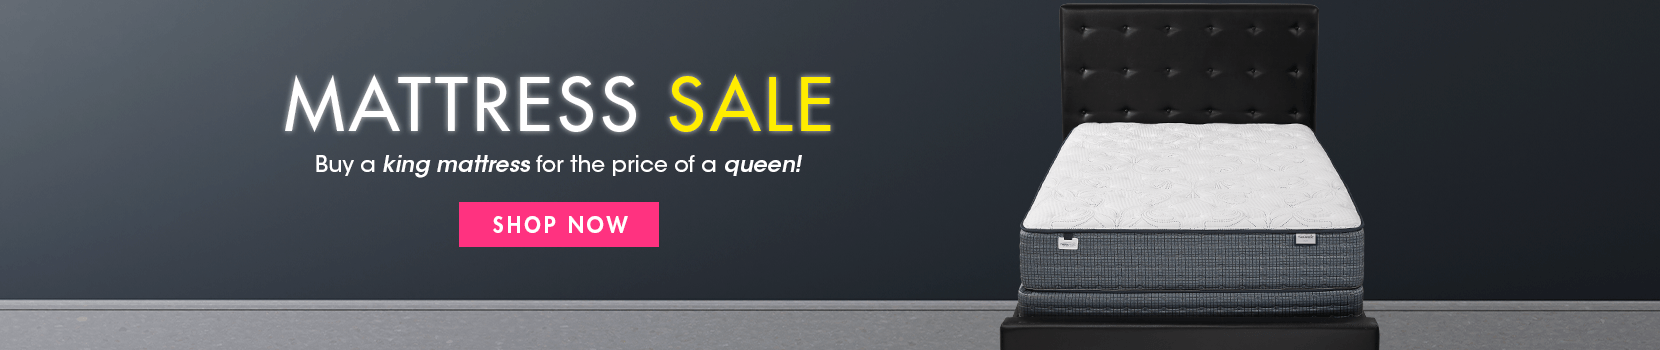 mattress sale. buy a king mattress for the price of a queen. shop now